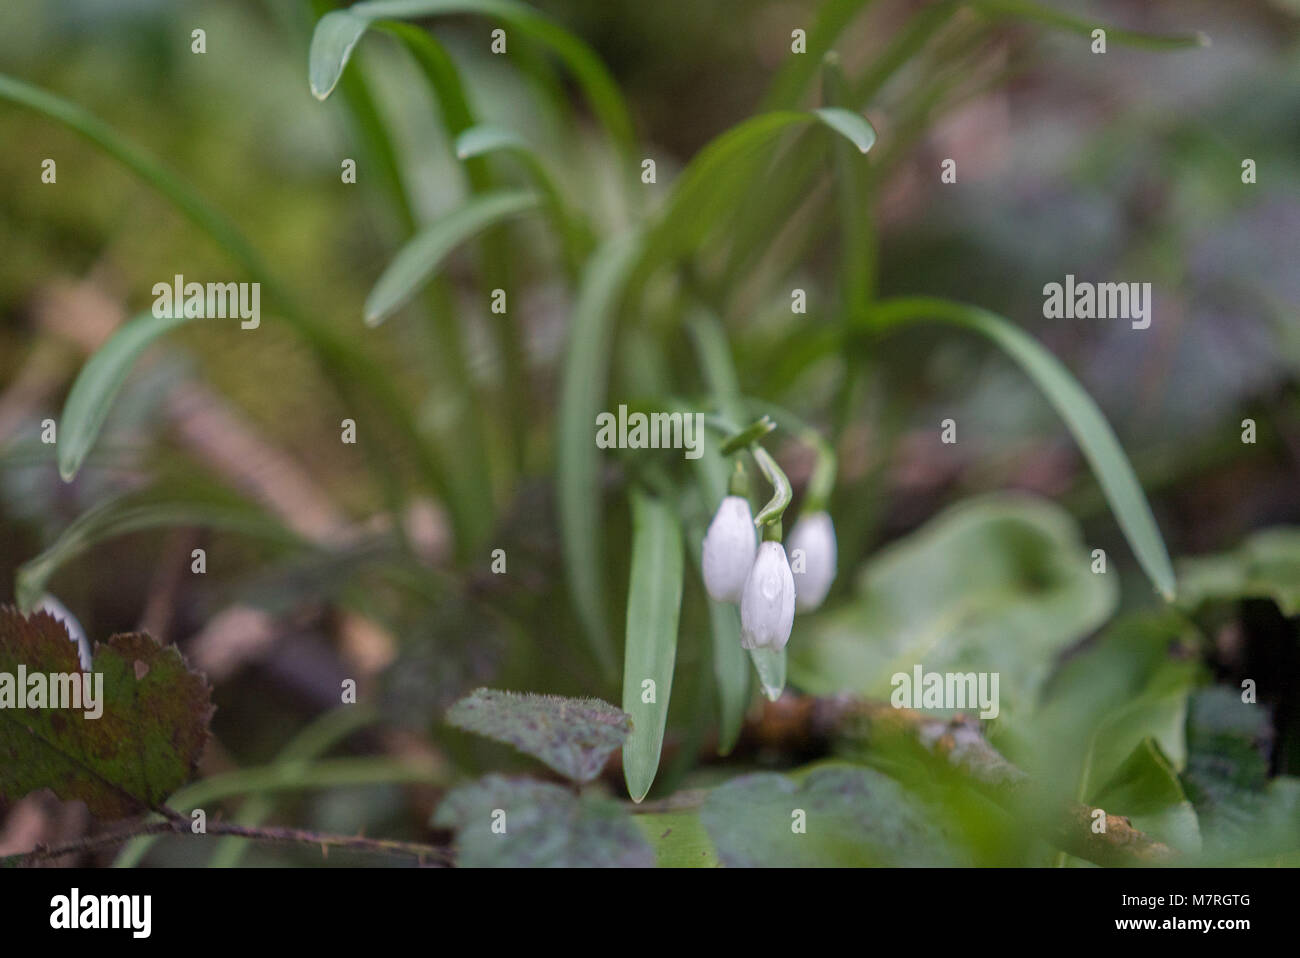 Snowdrop, Galanthus on the damp forest floor in Great Elm, Somerset UK - Stock Image